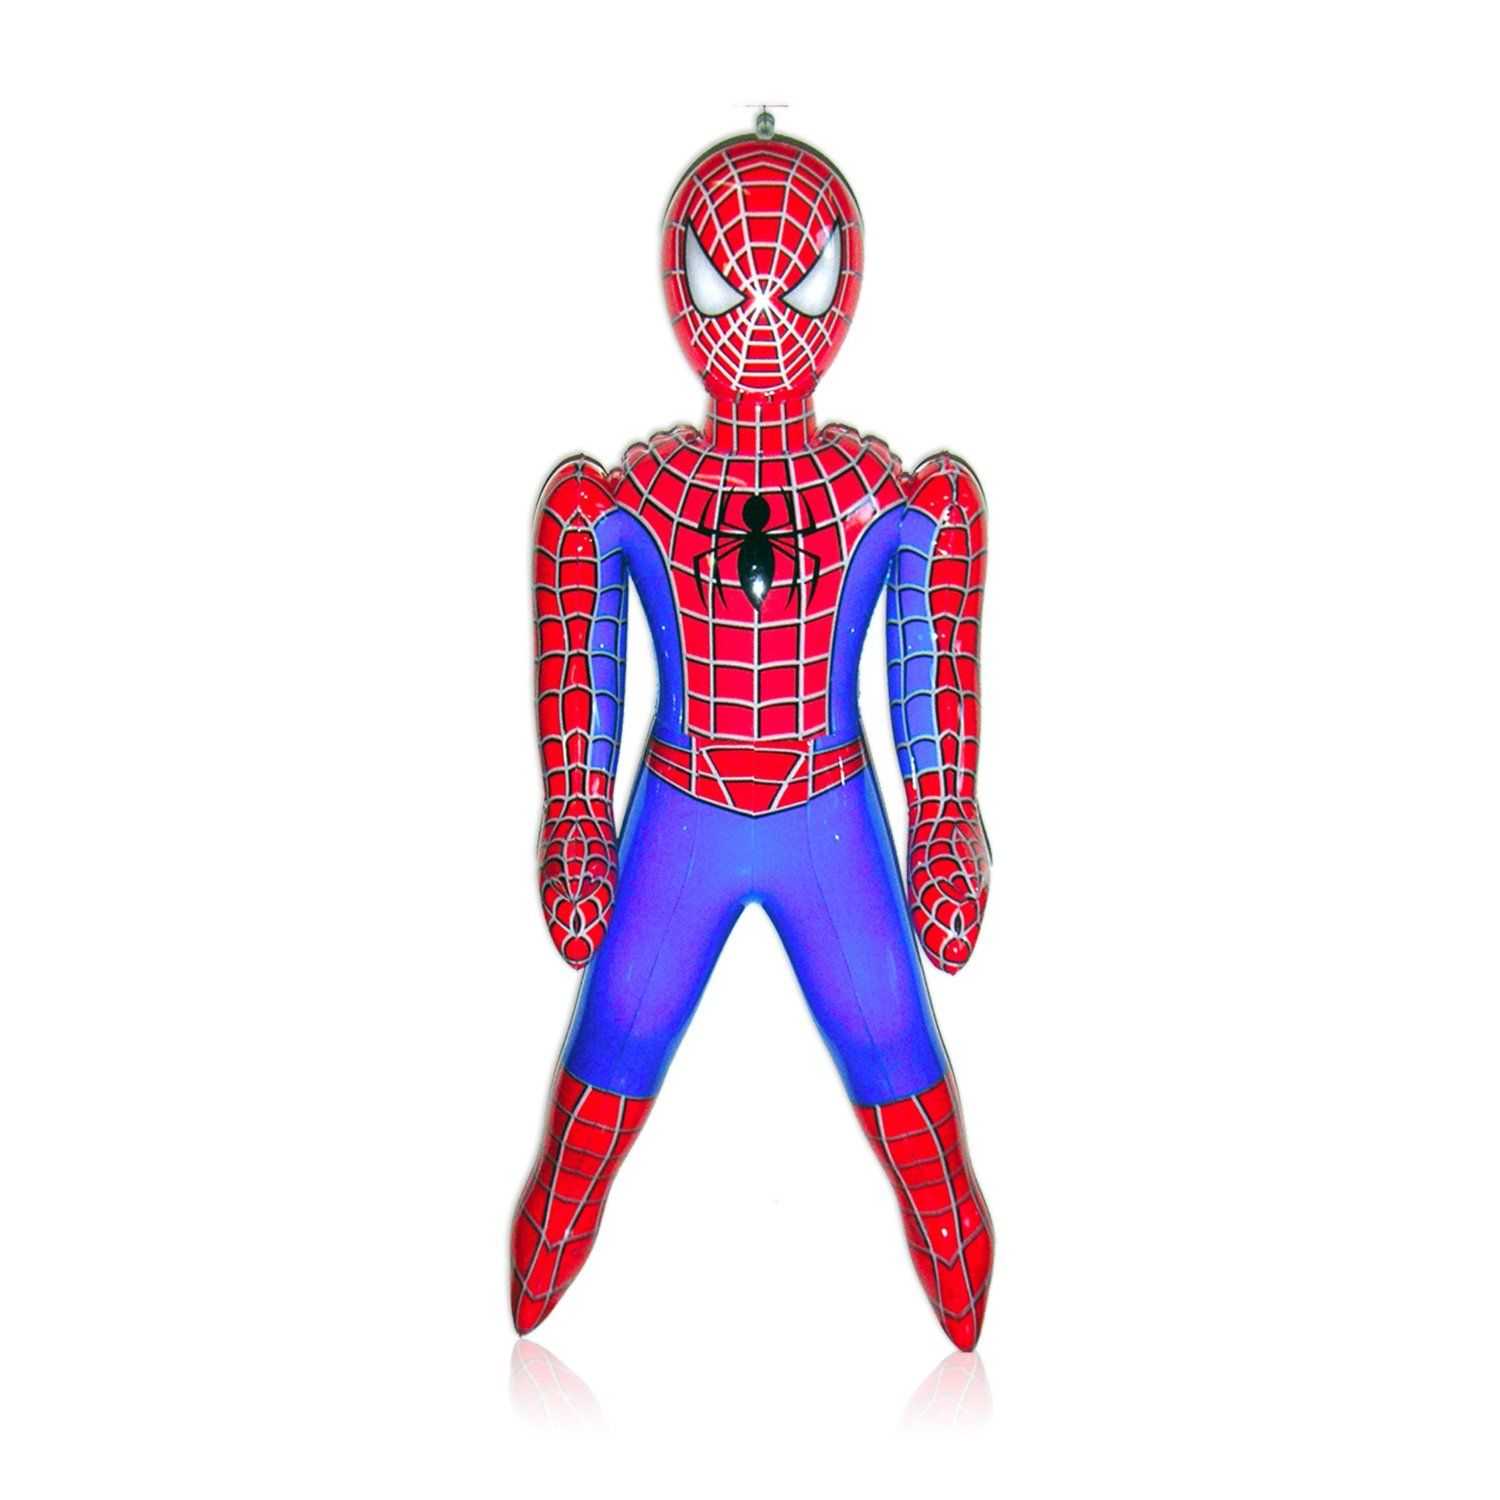 Spider-Sense: Spiderman Inflatable Character: Amazon.co.uk: Toys & Games